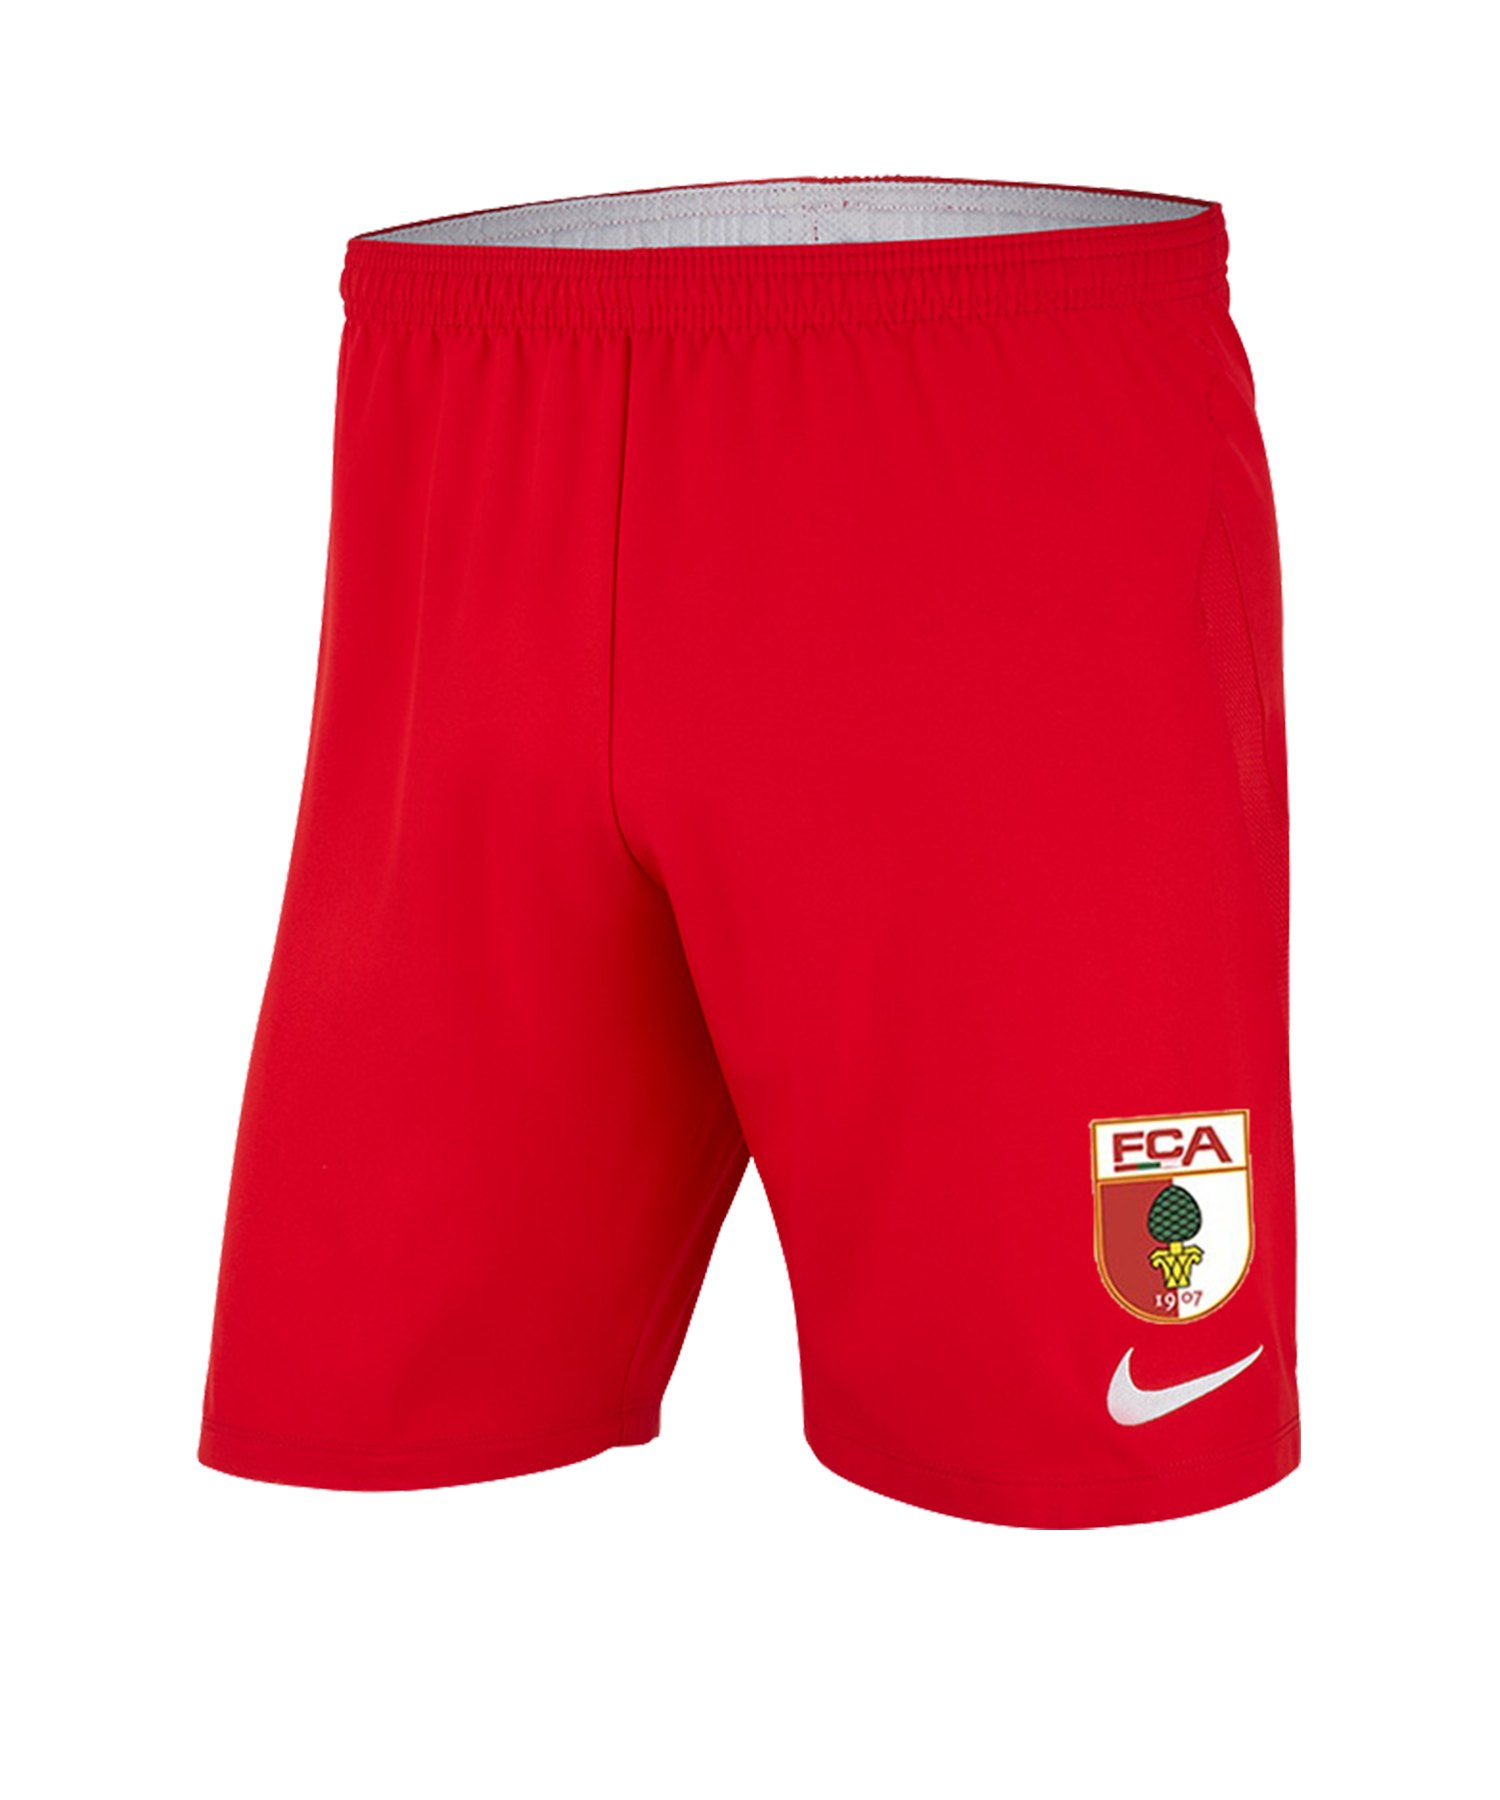 Nike FC Augsburg Short 3rd 2019/2020 Rot F657 - rot